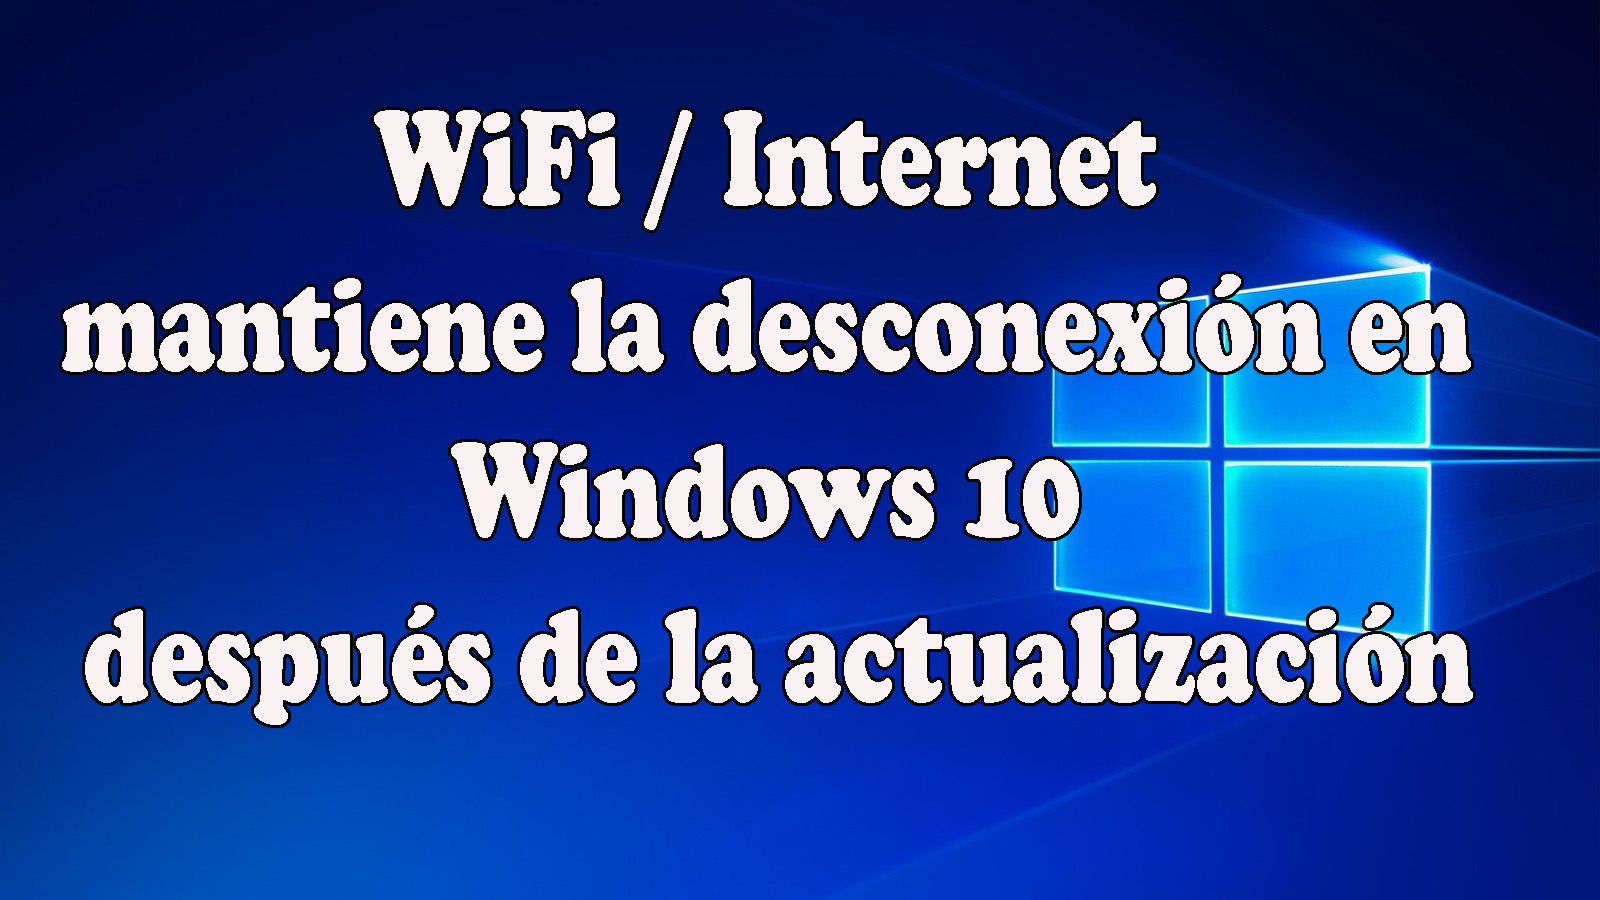 WiFi mantiene la desconexión en Windows 10